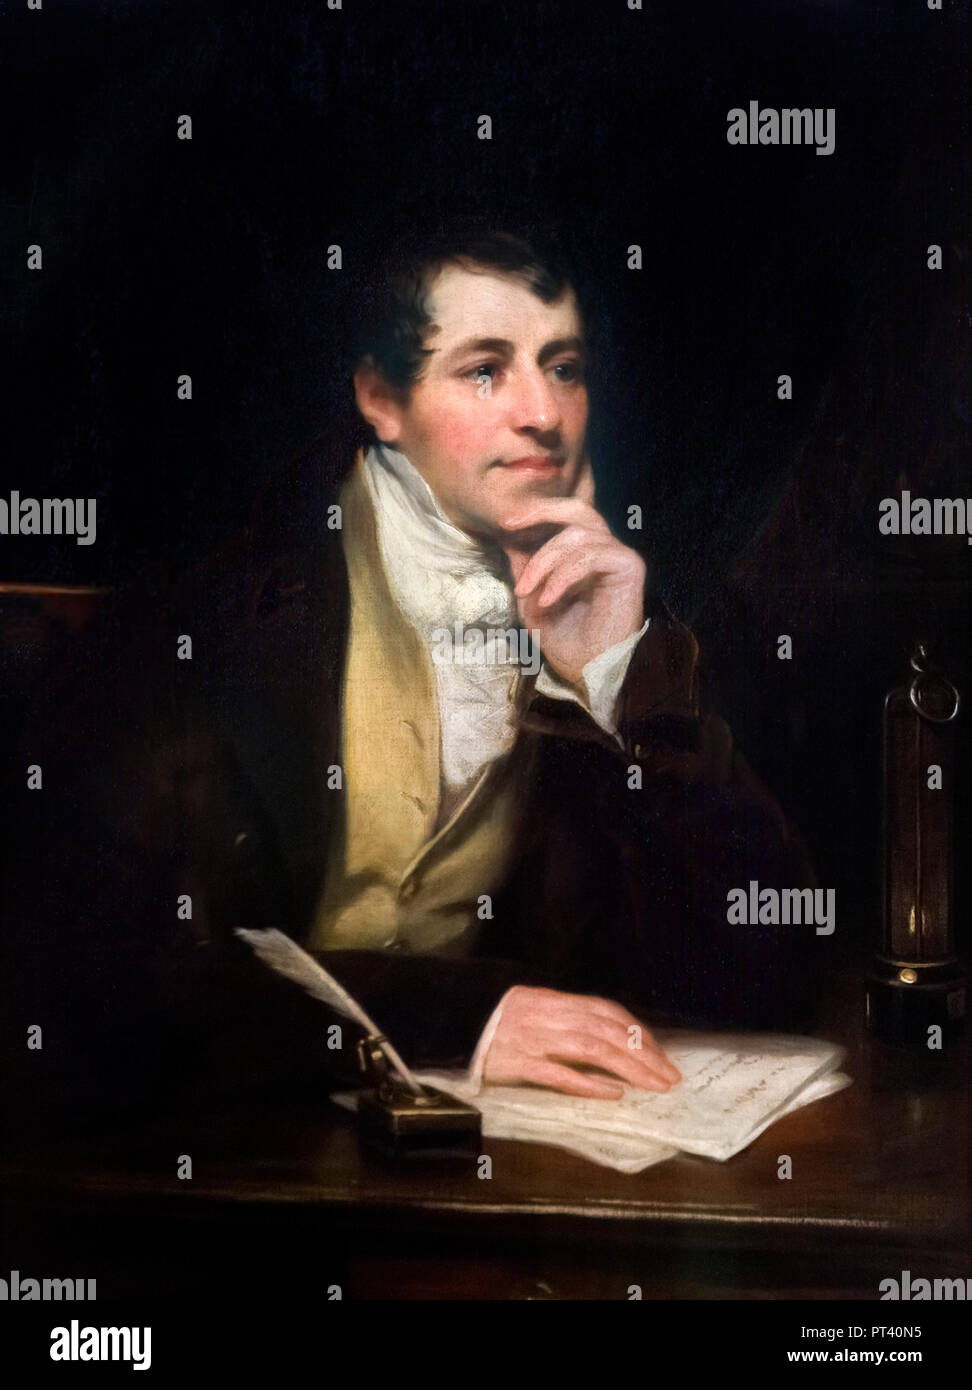 Sir Humphry Davy (1778 -1829), portrait by Thomas Phillips, oil on canvas, 1821. - Stock Image